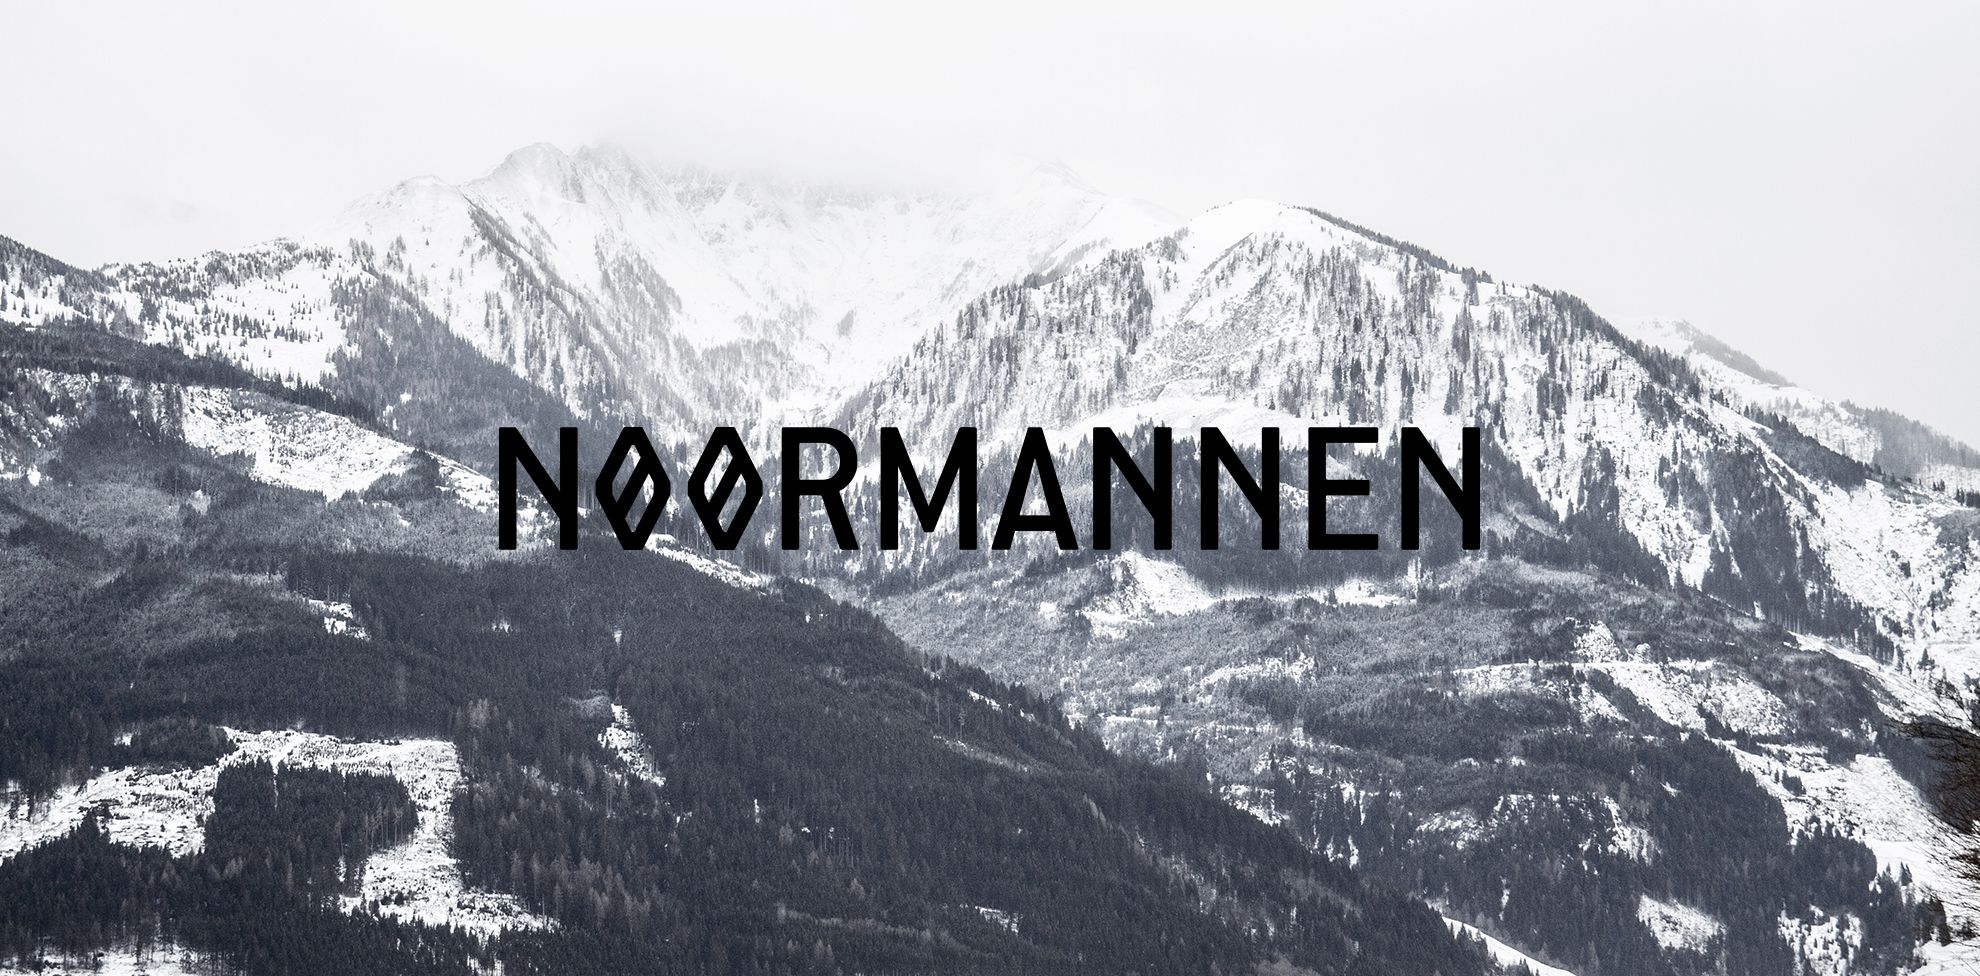 Noormannen logo on mountain background